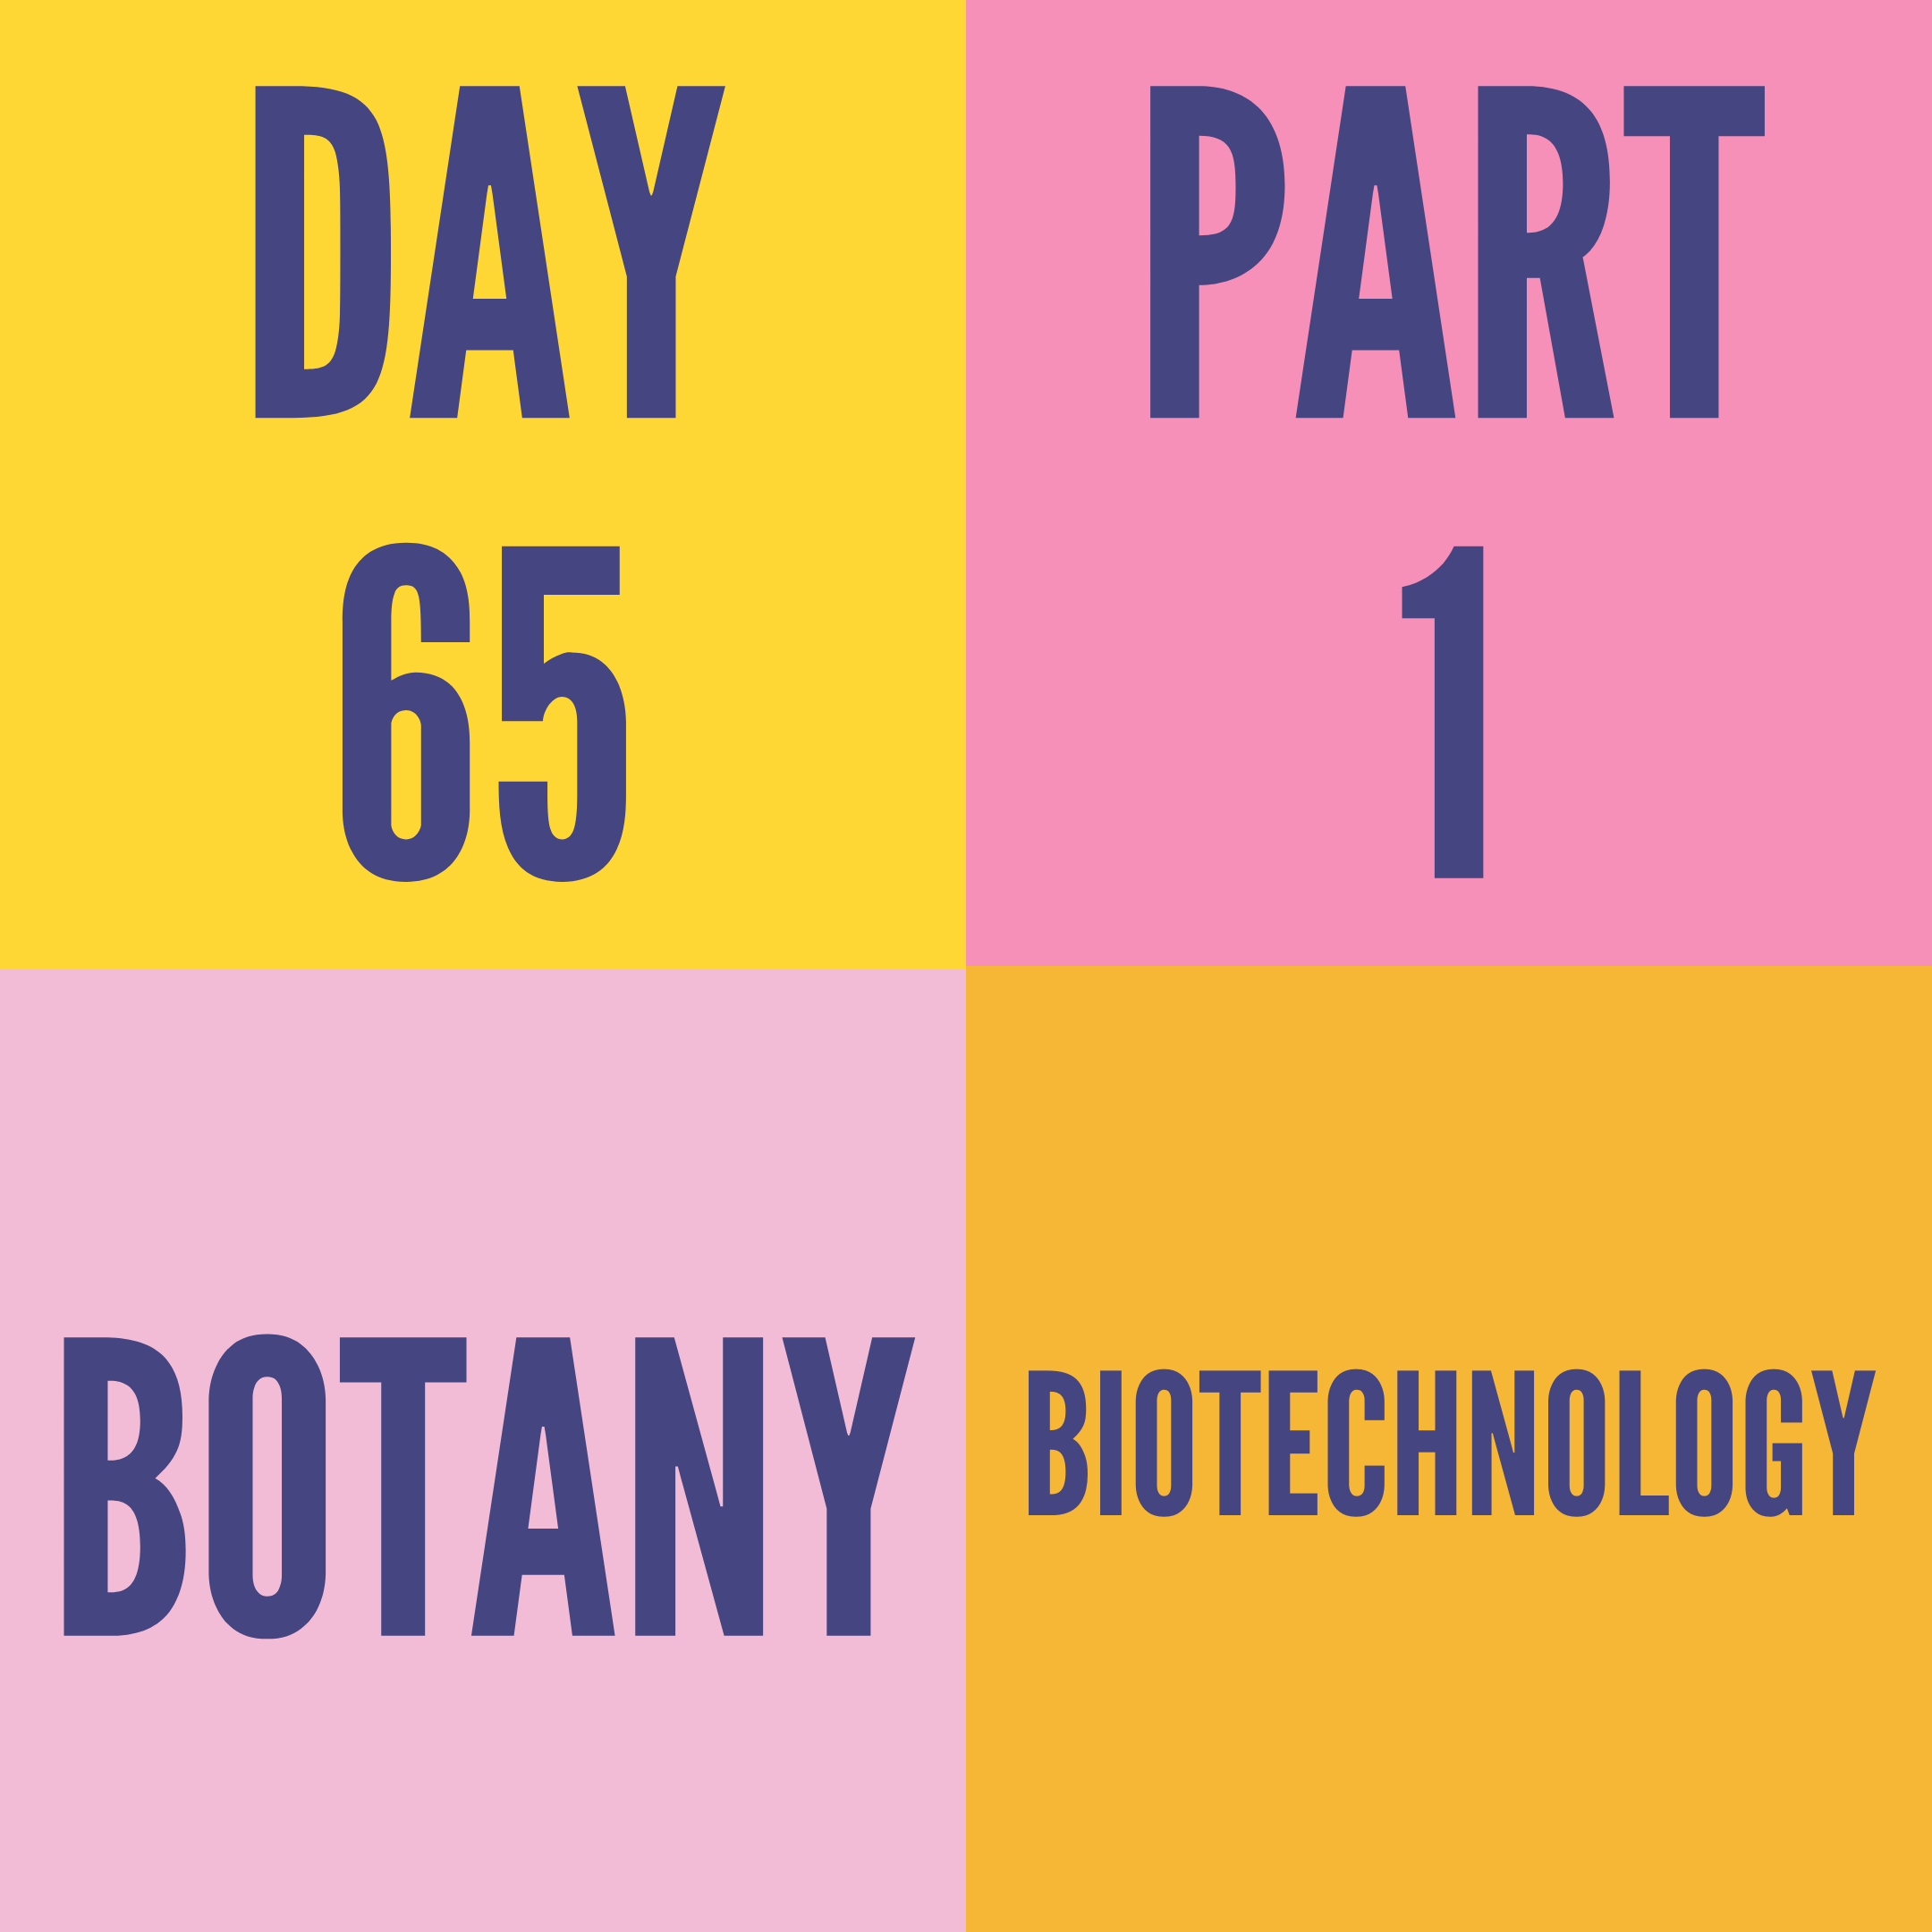 DAY-65 PART-1 BIOTECHNOLOGY